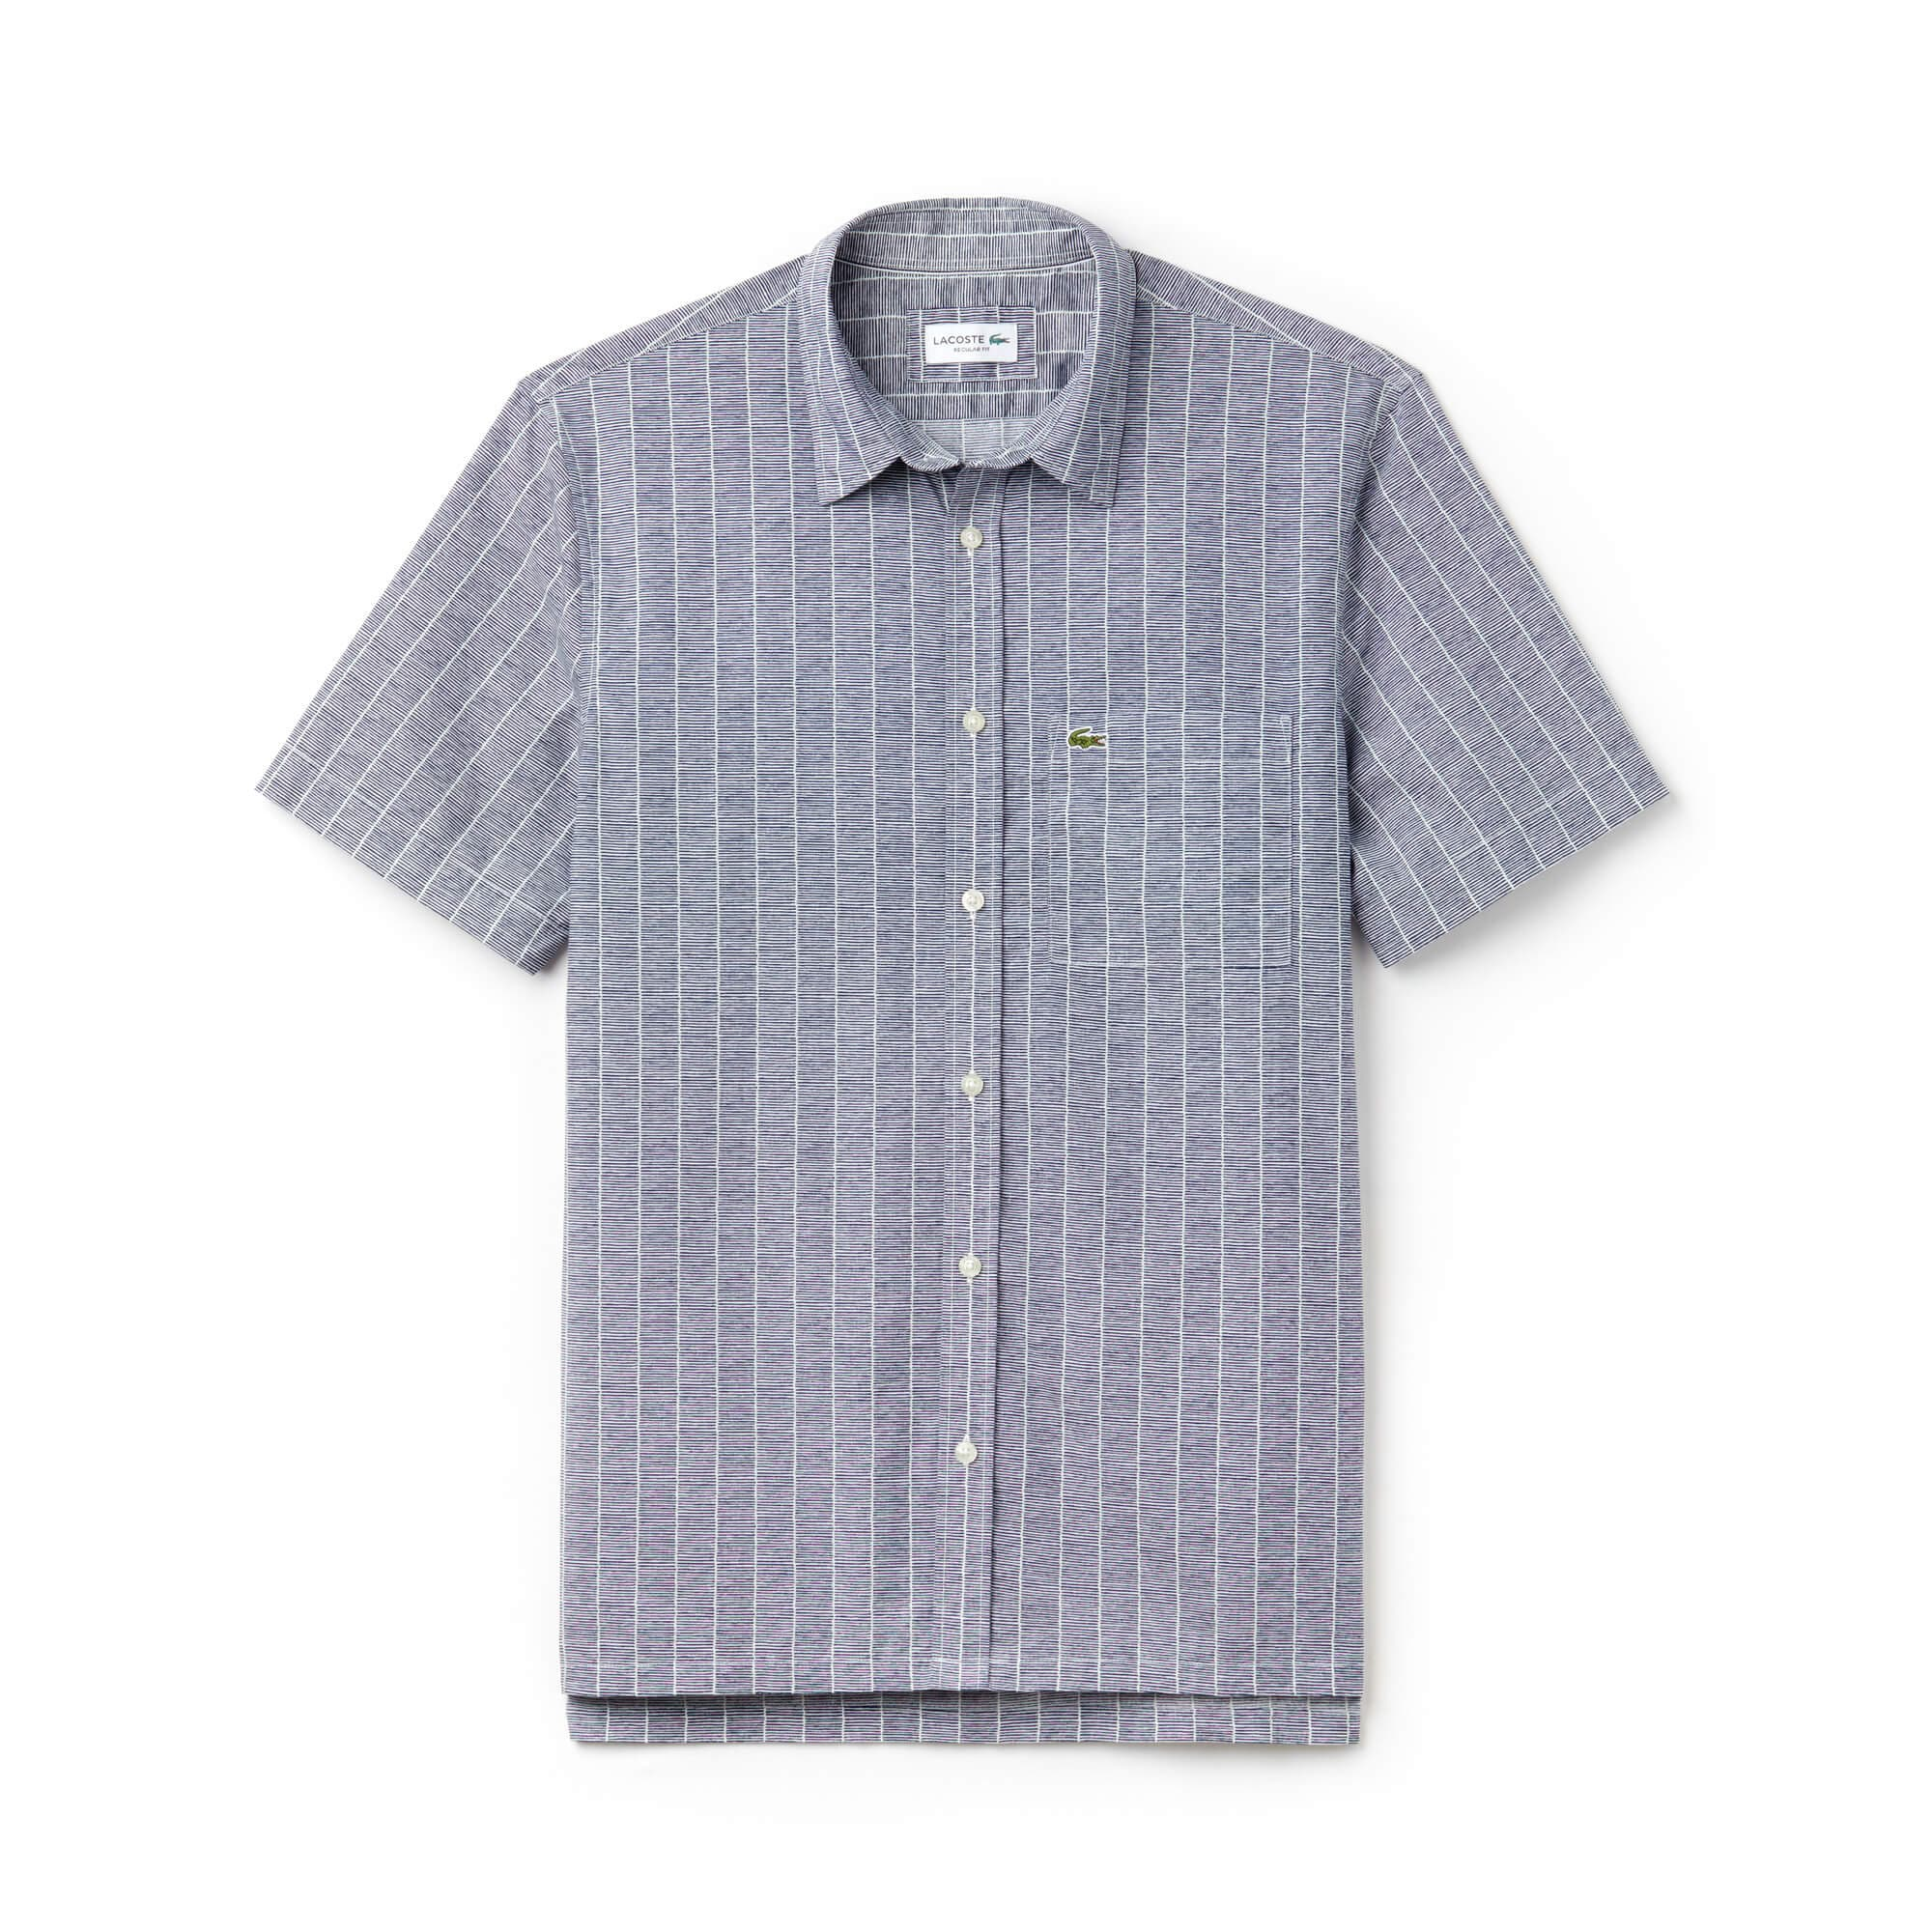 Men's Relaxed Fit Print Poplin Shirt